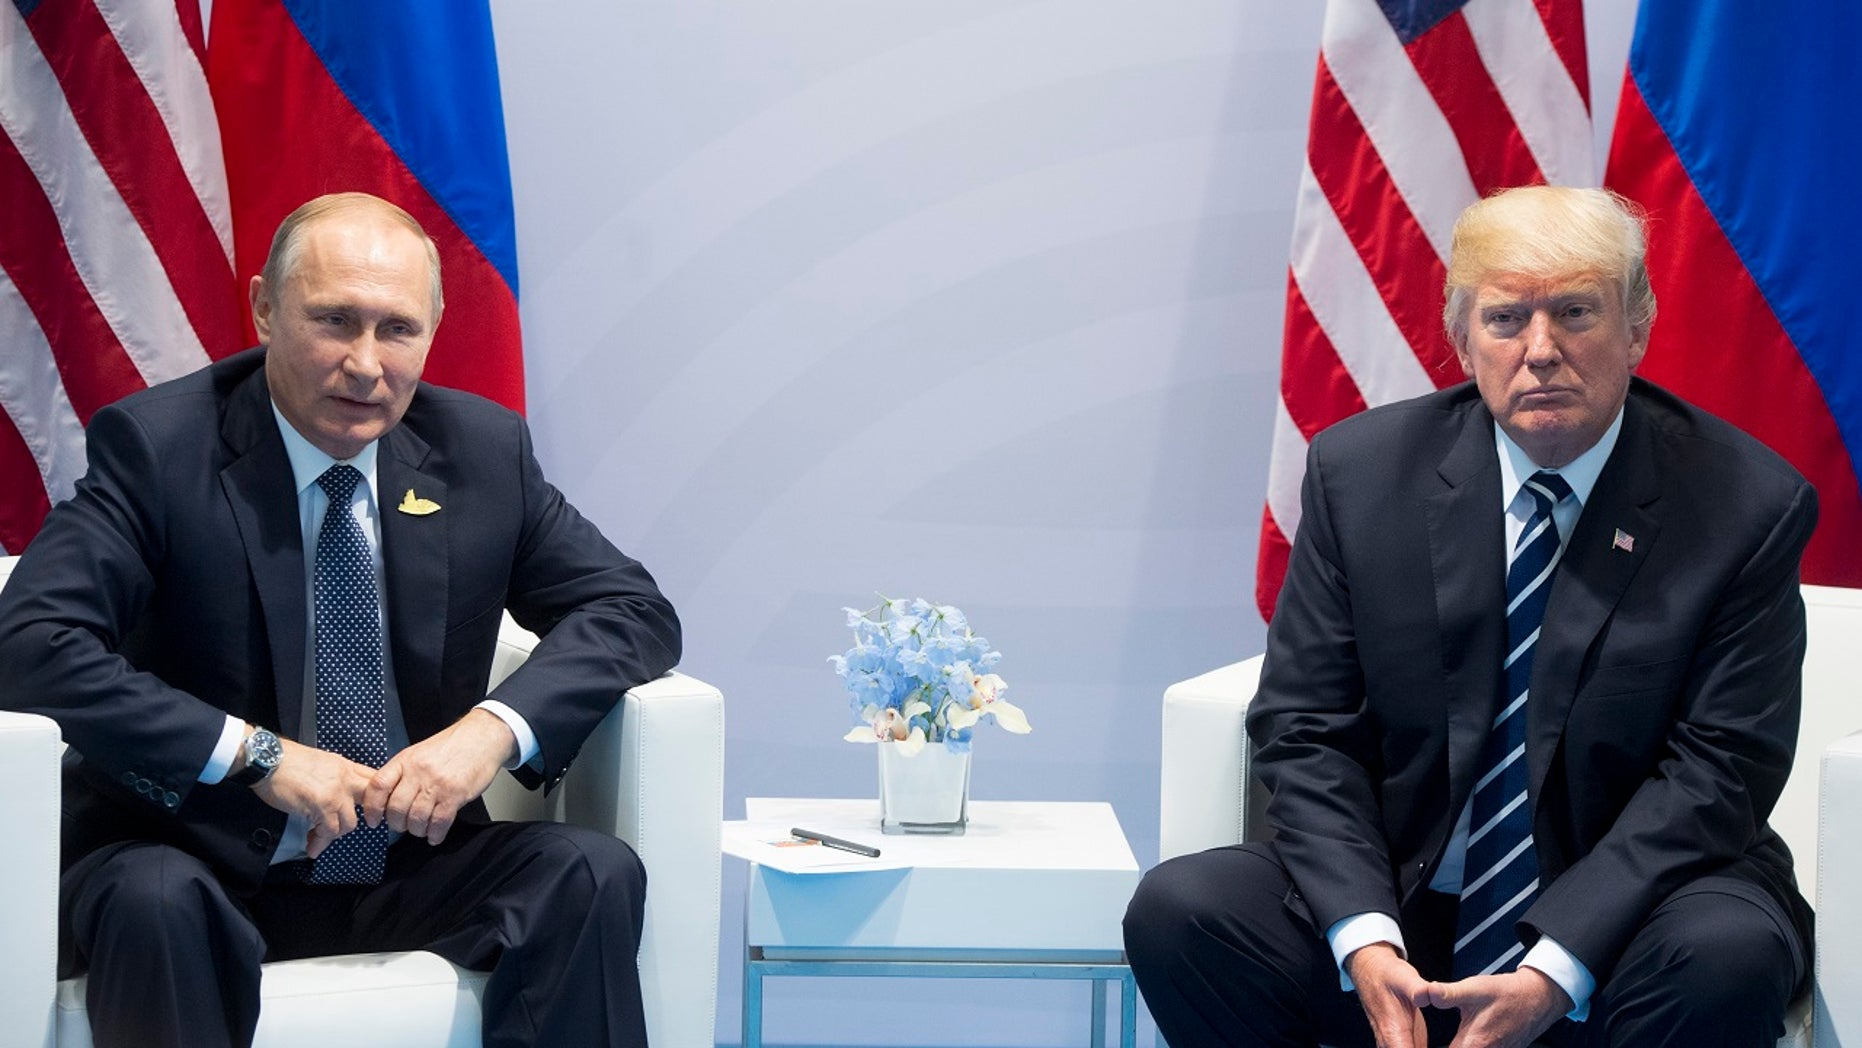 FILE - In this July 7, 2017, file photo, U.S. President Donald Trump, right, and Russian President Vladimir Putin pose for a photo during the G20 summit in Hamburg Germany. (AP Photo/Marcellus Stein, File)